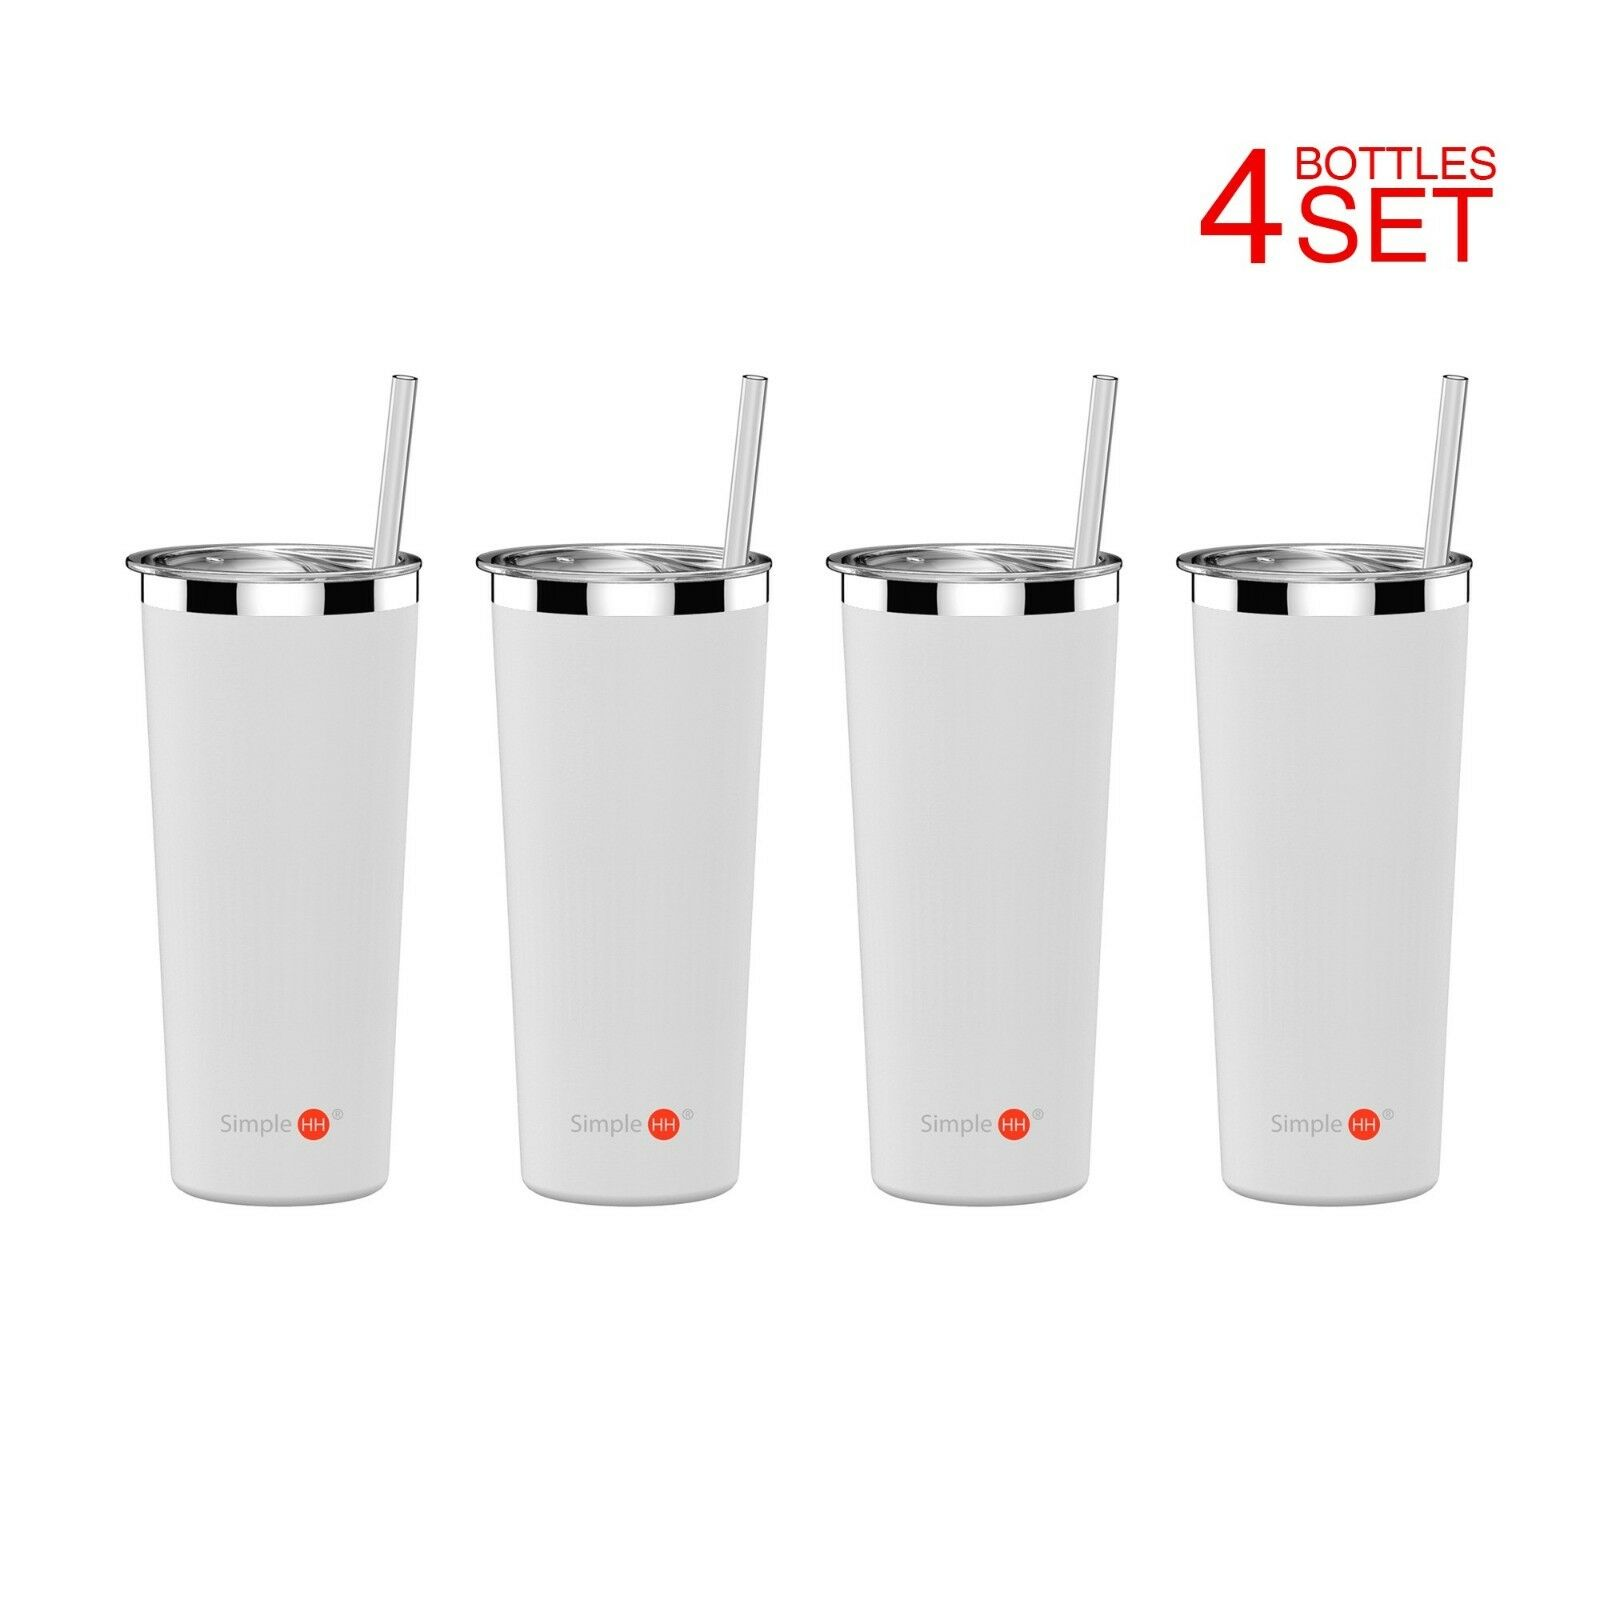 4 SET Double Wall Tumbler Vacuum Insulated Stainless Steel Coffee Cup With Straw